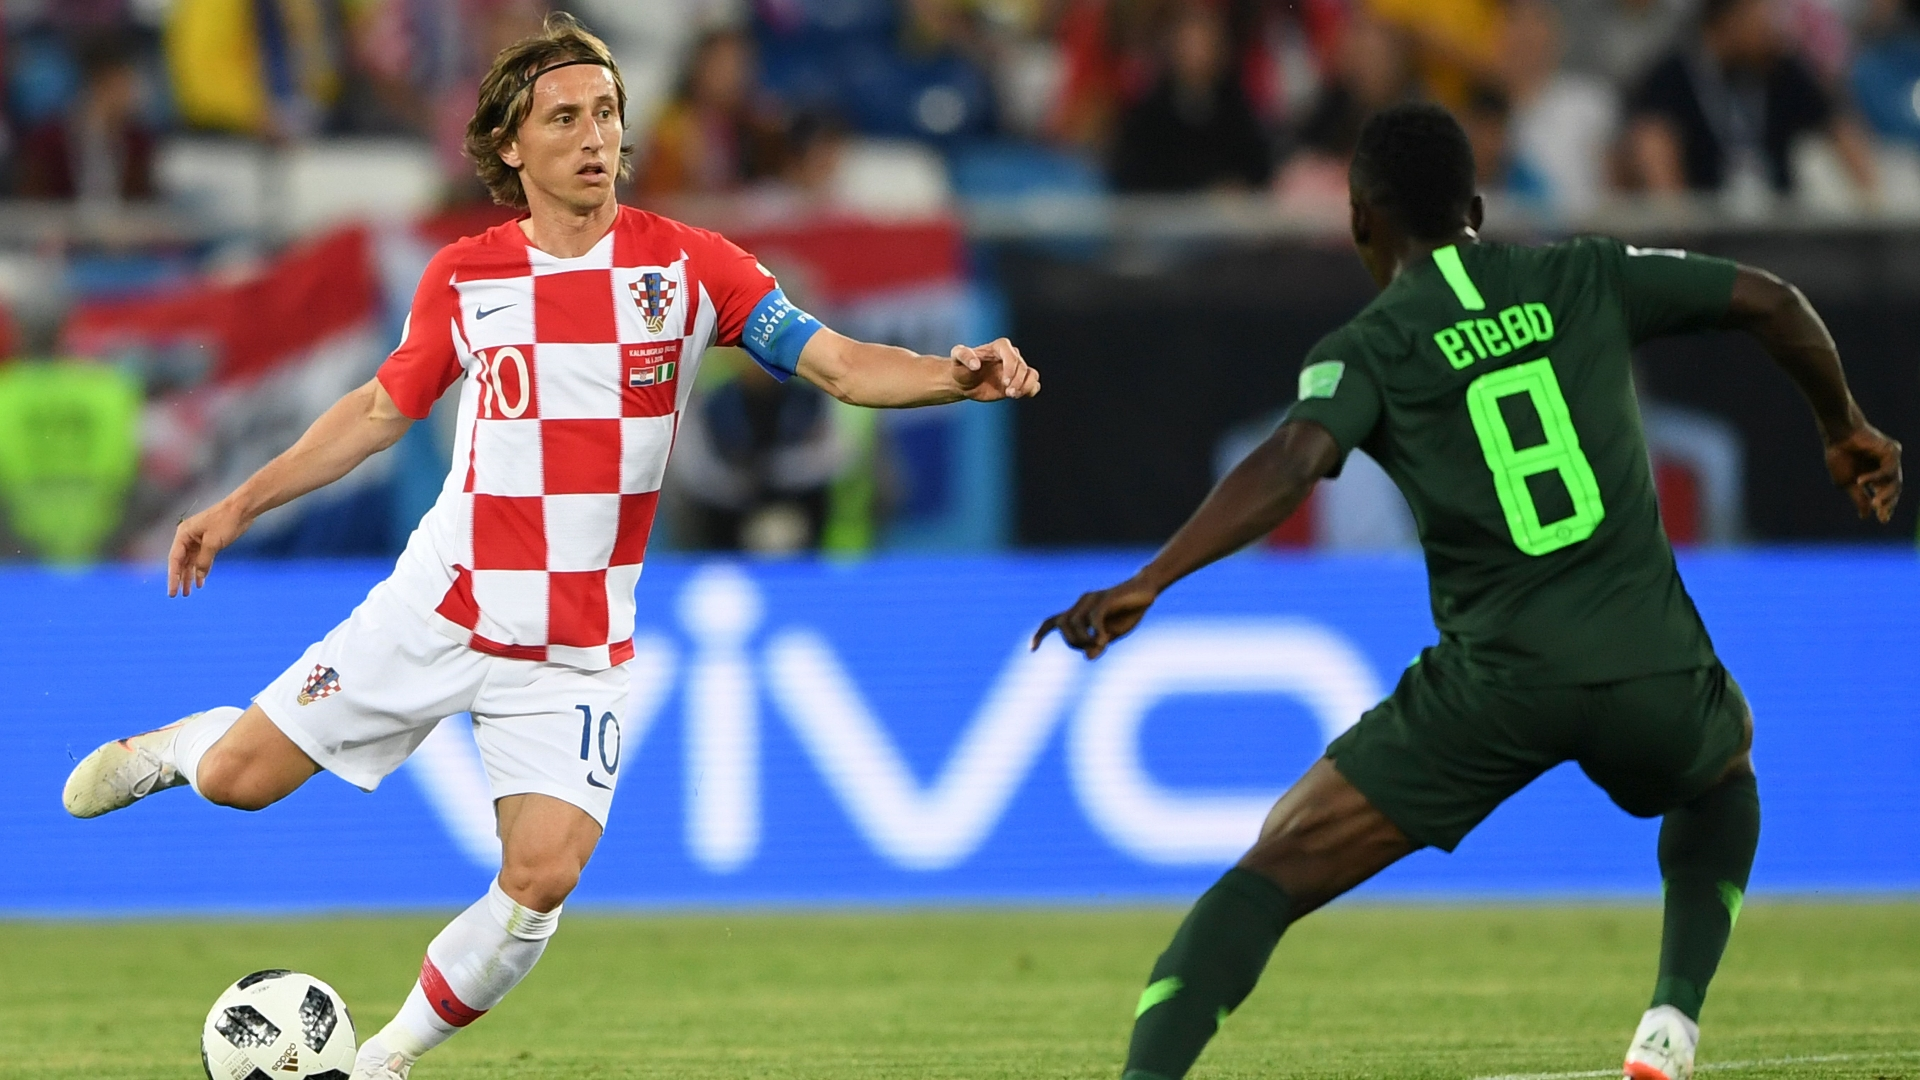 Why Rohr must allow Oghenekaro Etebo to channel his Olympic greatness at the World Cup